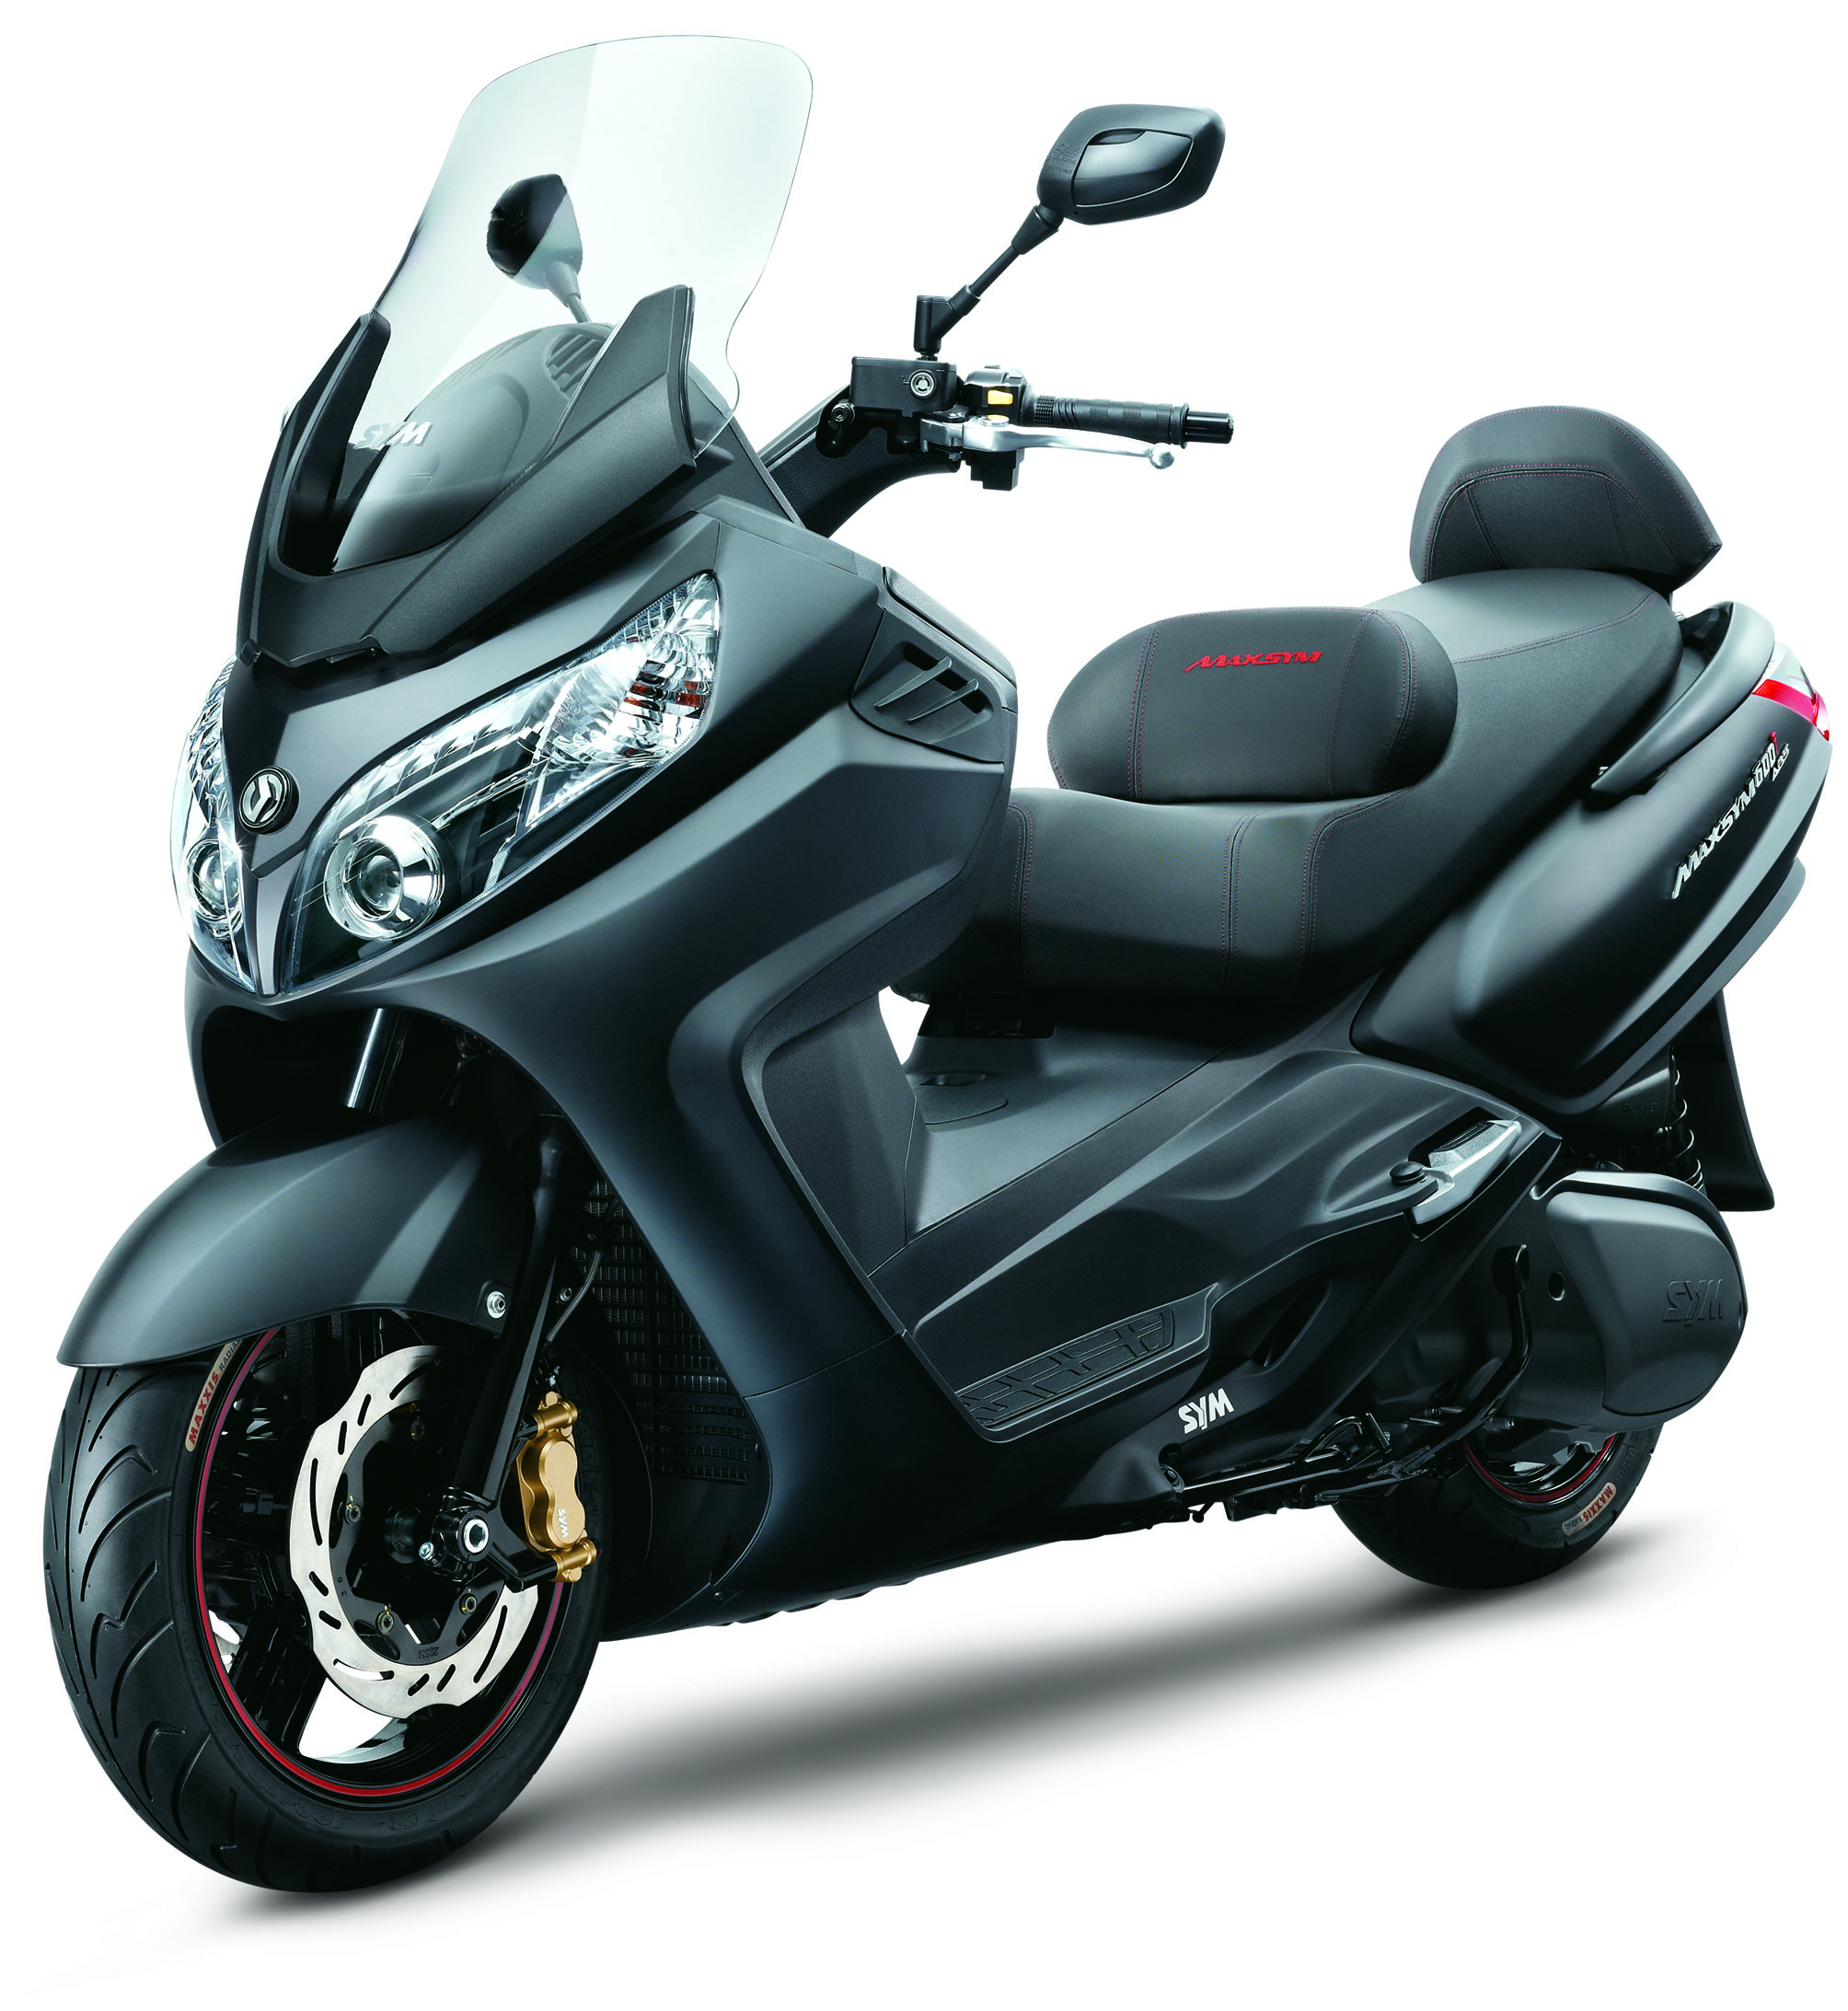 SYM SCOOTER MAXSYM 600i ABS SPORT NEGRO